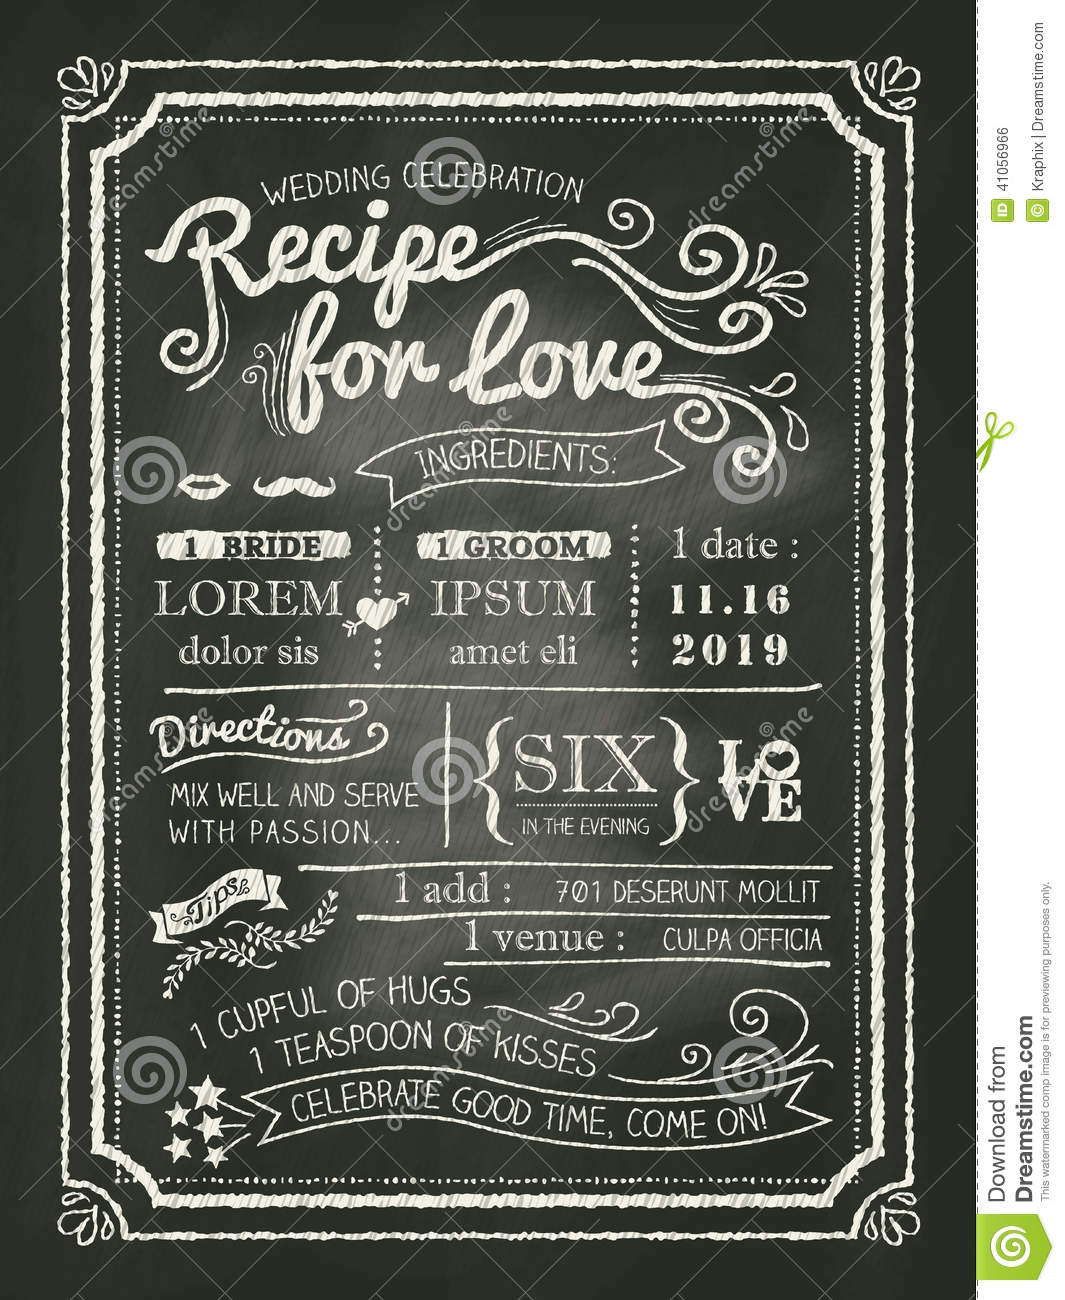 Recipe For Love Chalkboard Wedding Invitation Card Stock Vector